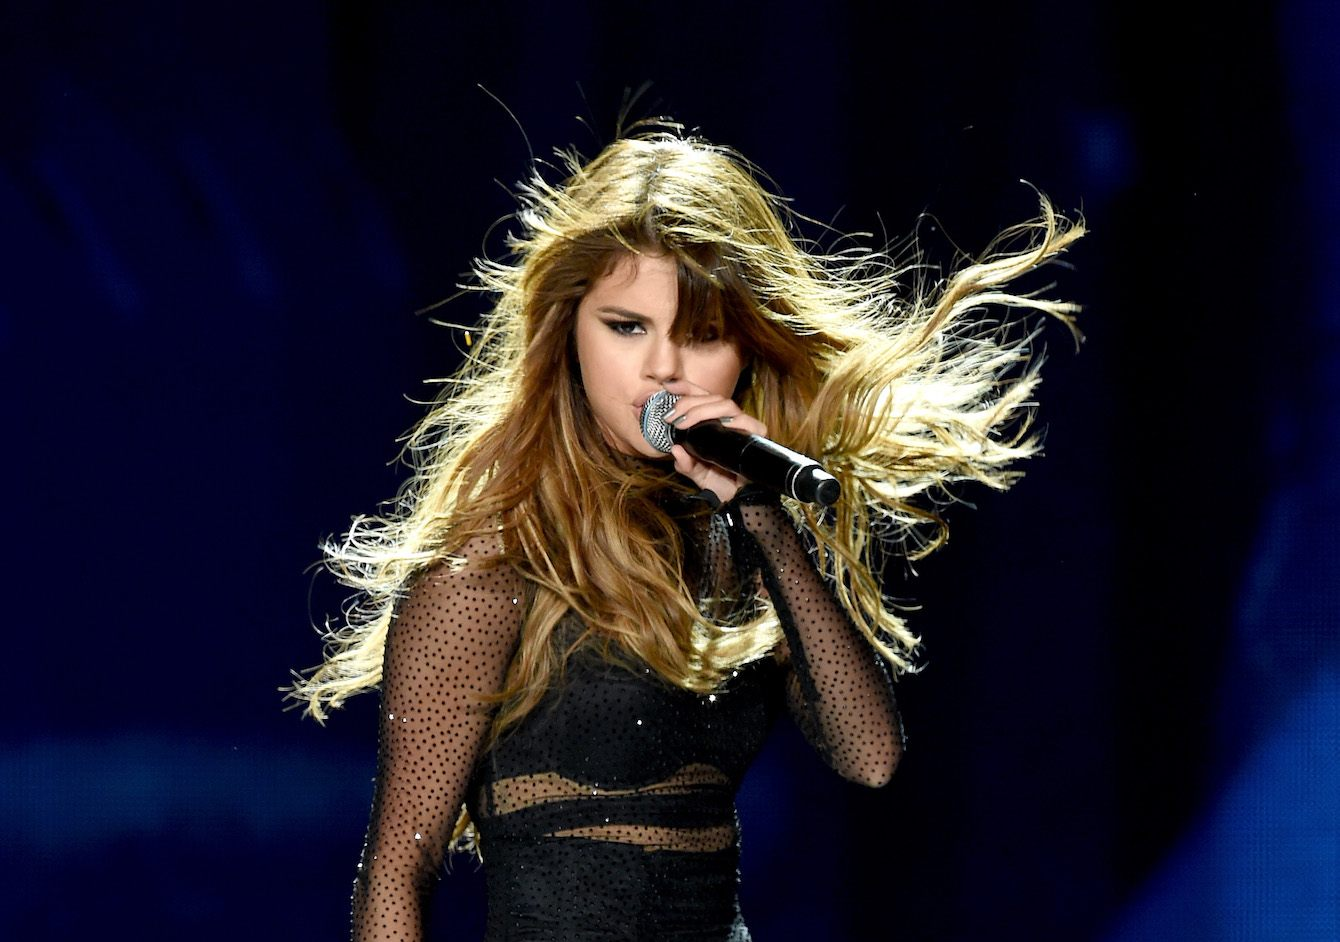 Selena Gomez sings on stage as her hair is blowing in the wind.